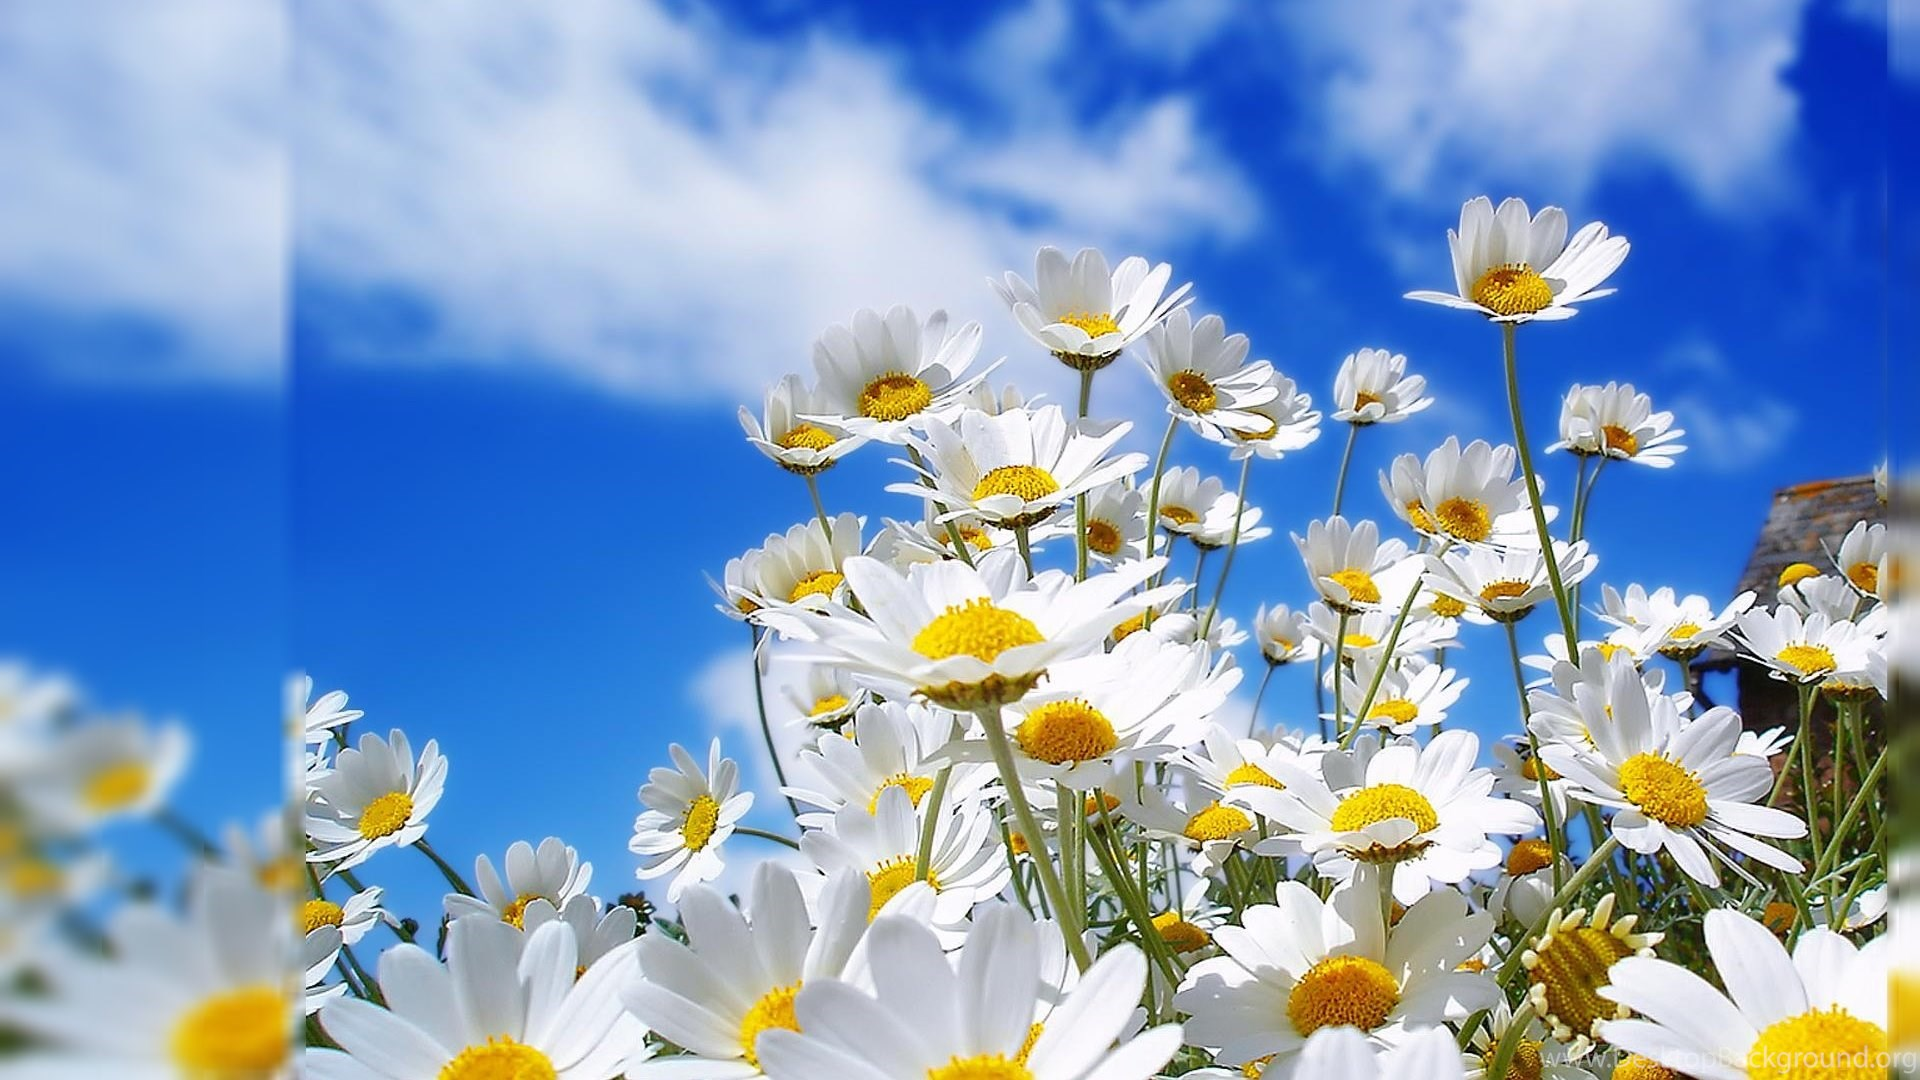 Flowers Pictures For Desktop Backgrounds Hd Wallpapers Desktop Desktop Background